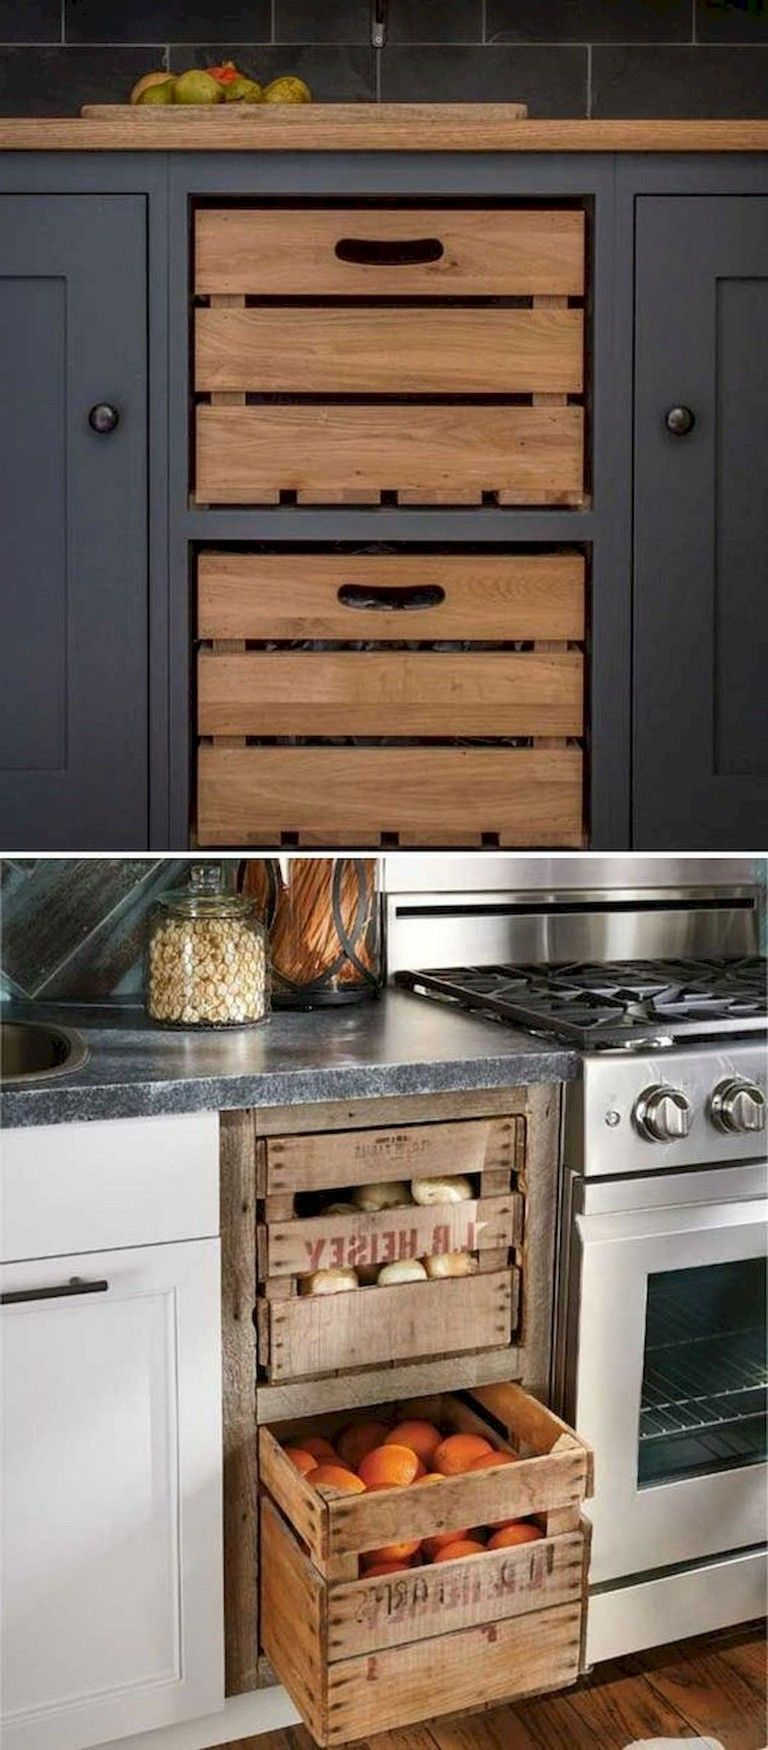 Kitchen Accessories You Didnt Know You Needed  Interior Design Ideas  Home Decorating Inspiration  moercar  dekor  Kitchen Accessories You Didnt Know You Needed  Interior...